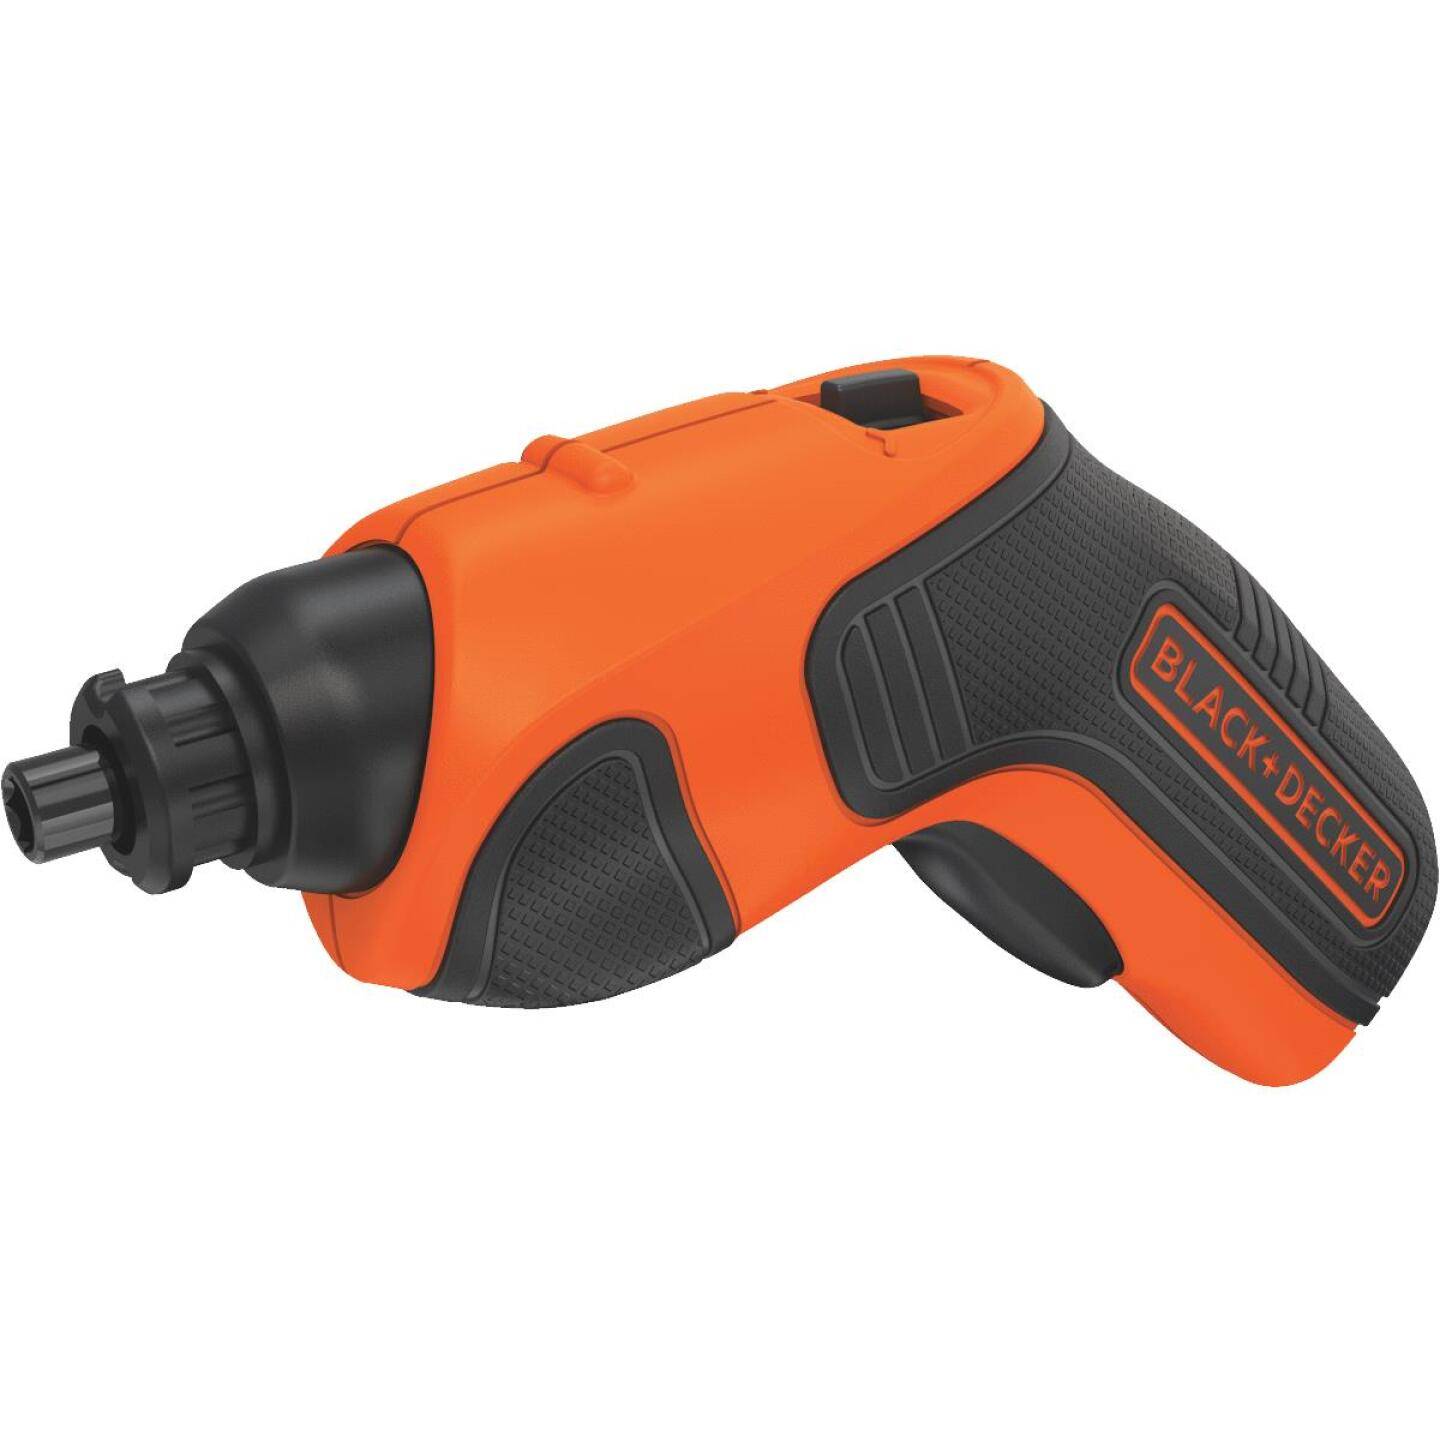 Black & Decker 4-Volt MAX Lithium-Ion 1/4 In. Cordless Screwdriver Image 3